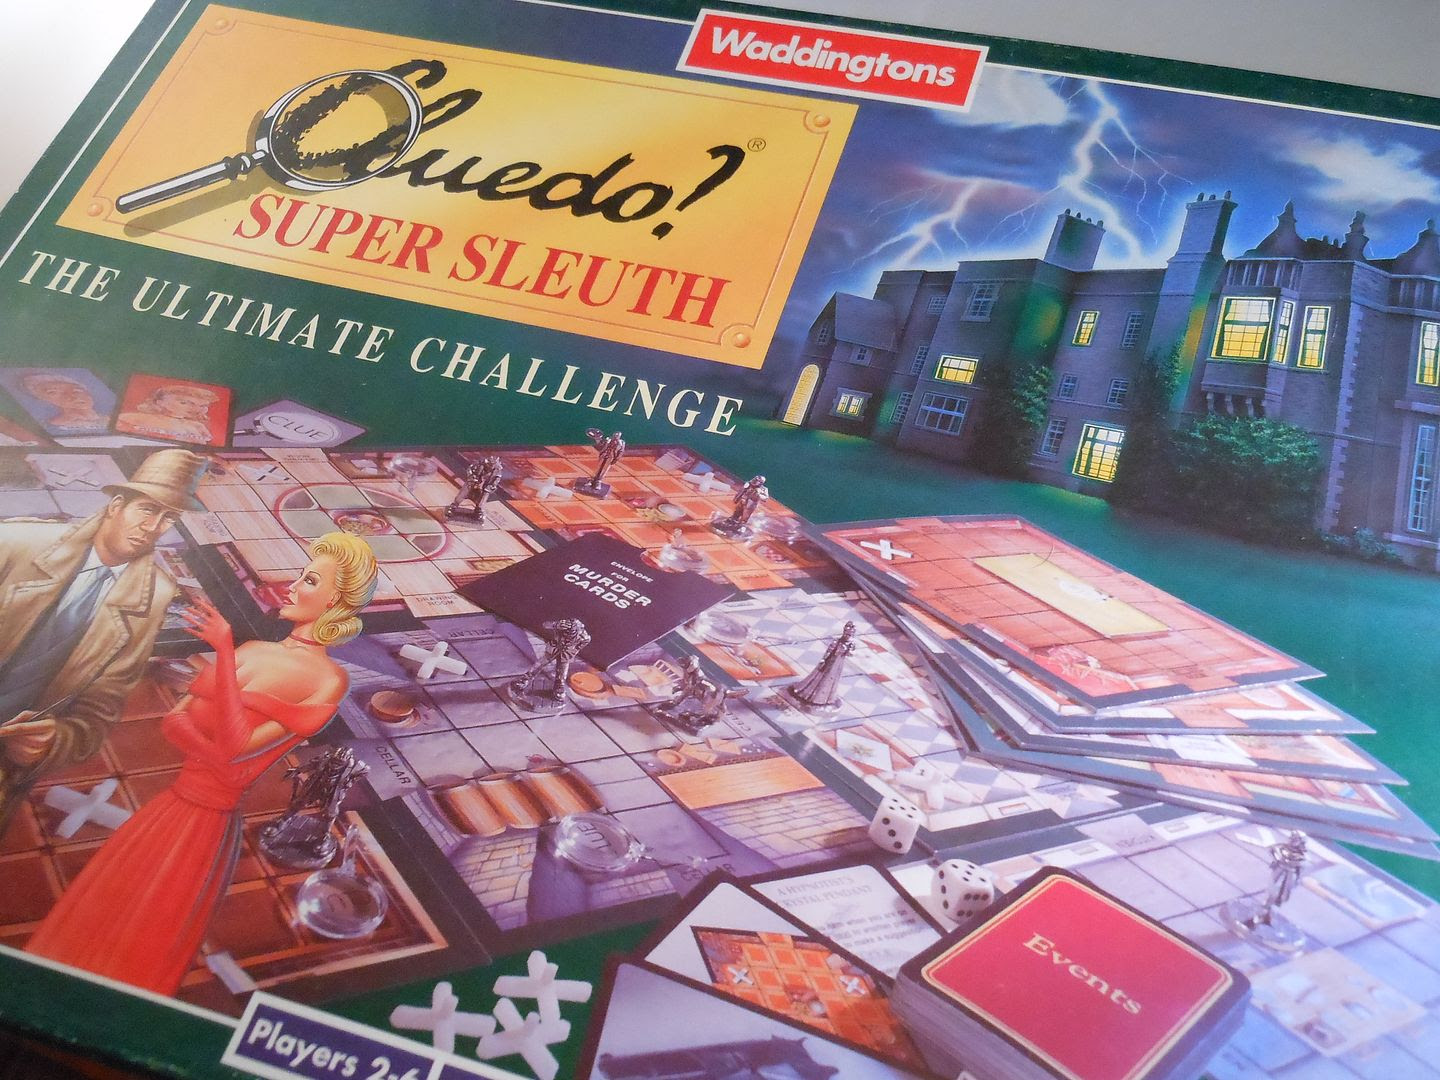 Artwork from the box cover for Cluedo Super Sleuth, from 1995.